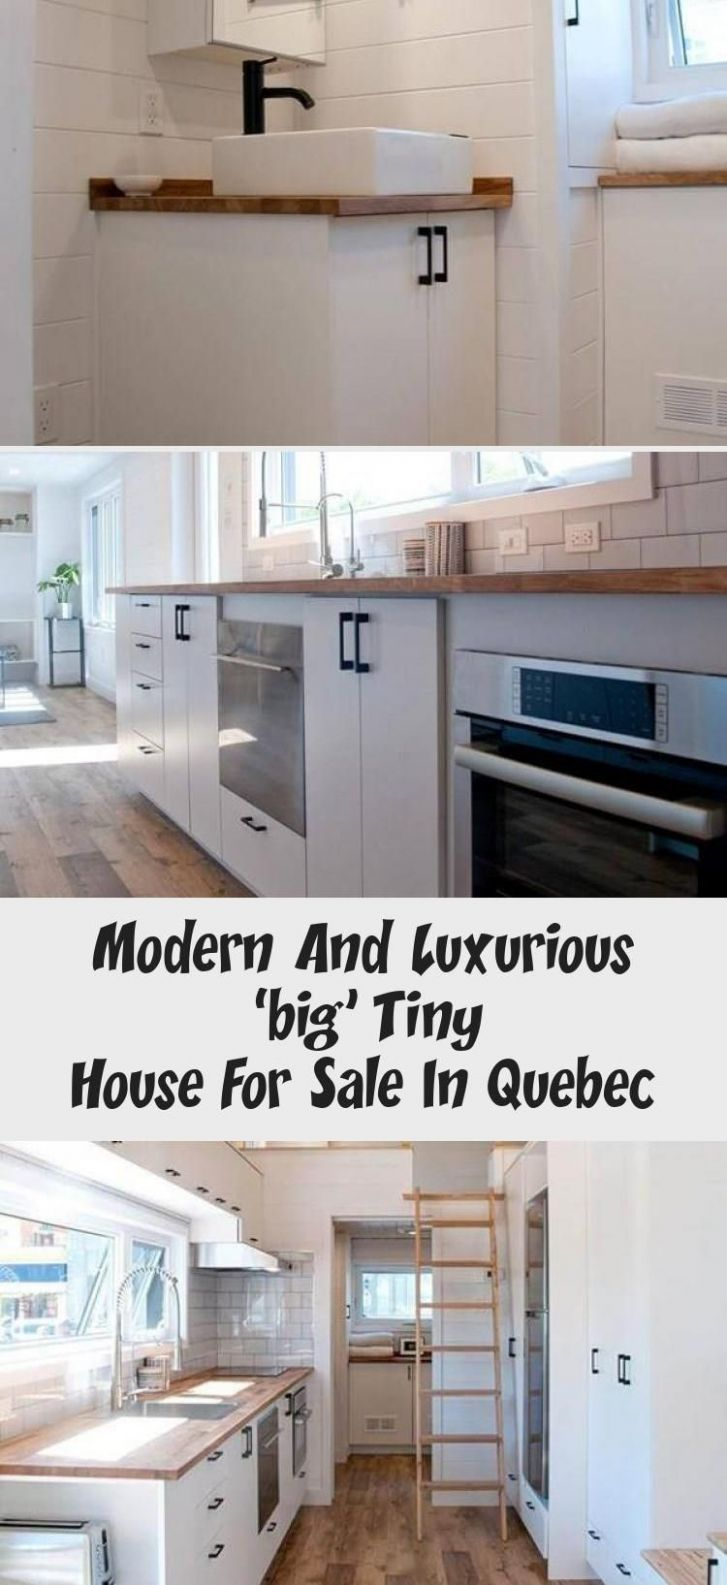 Modern And Luxurious 'big' Tiny House For Sale In Quebec in 8 ...